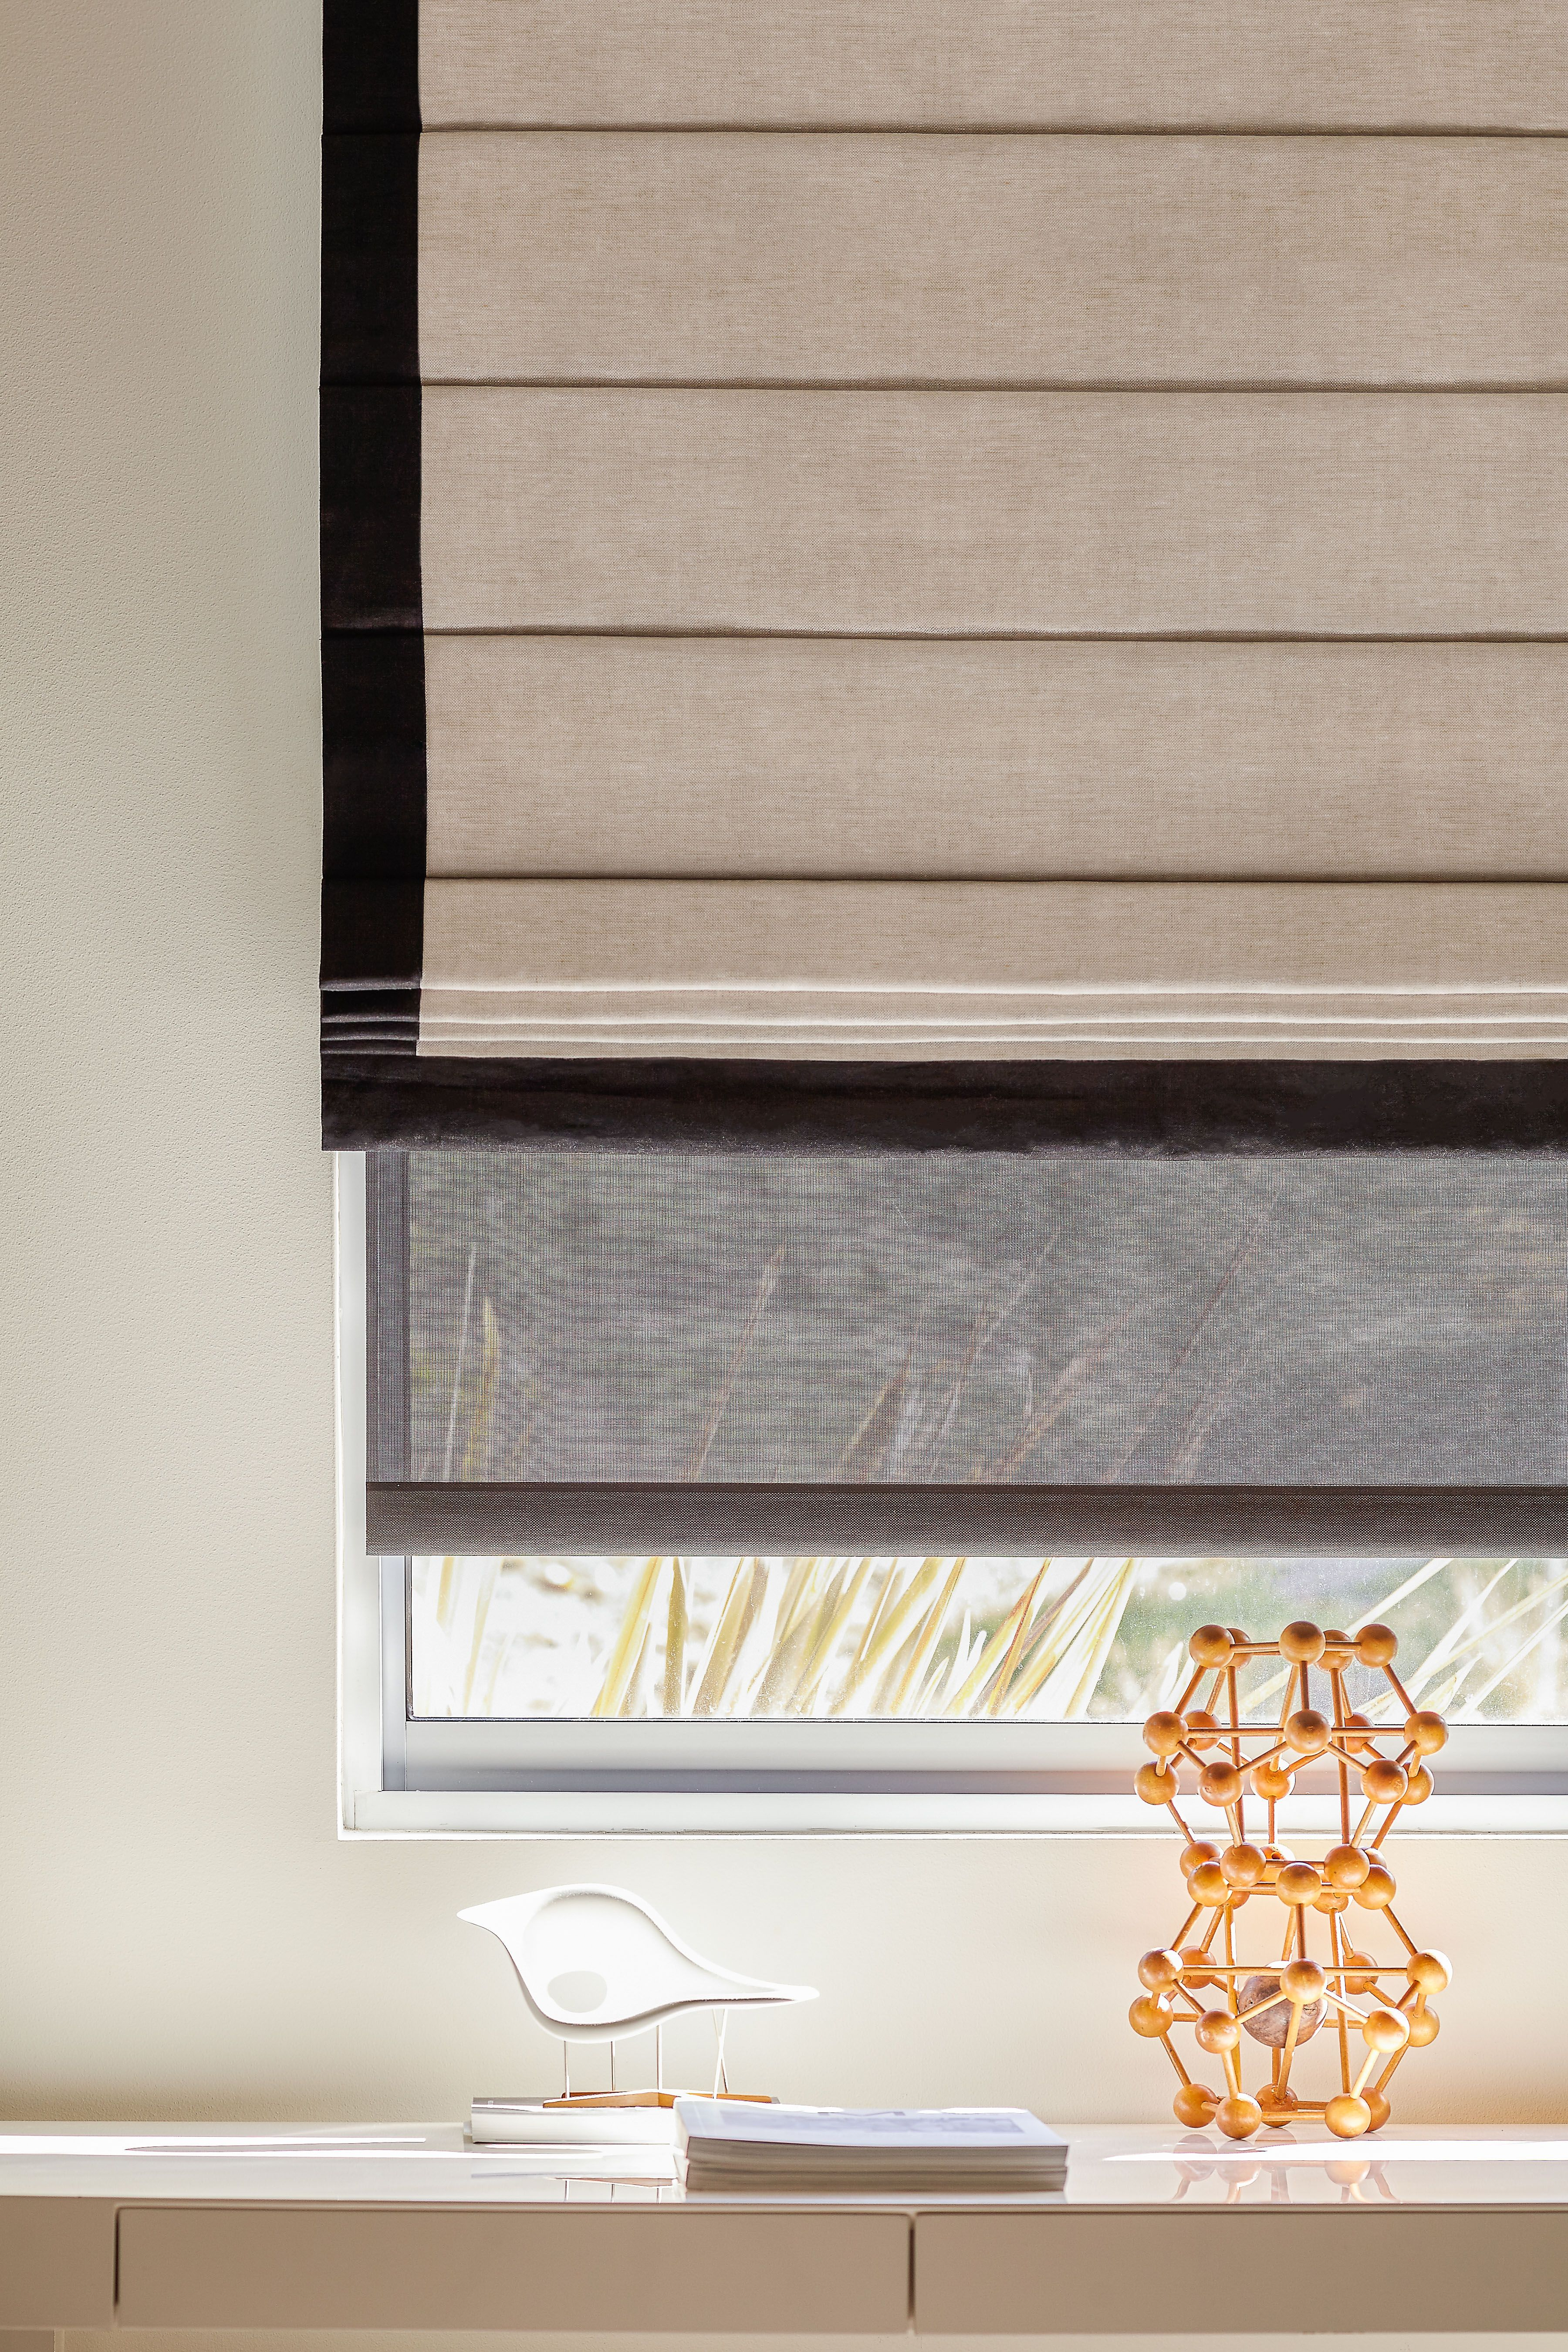 Cascade Roman Shades Look Beautiful With A Custom Border Shown In